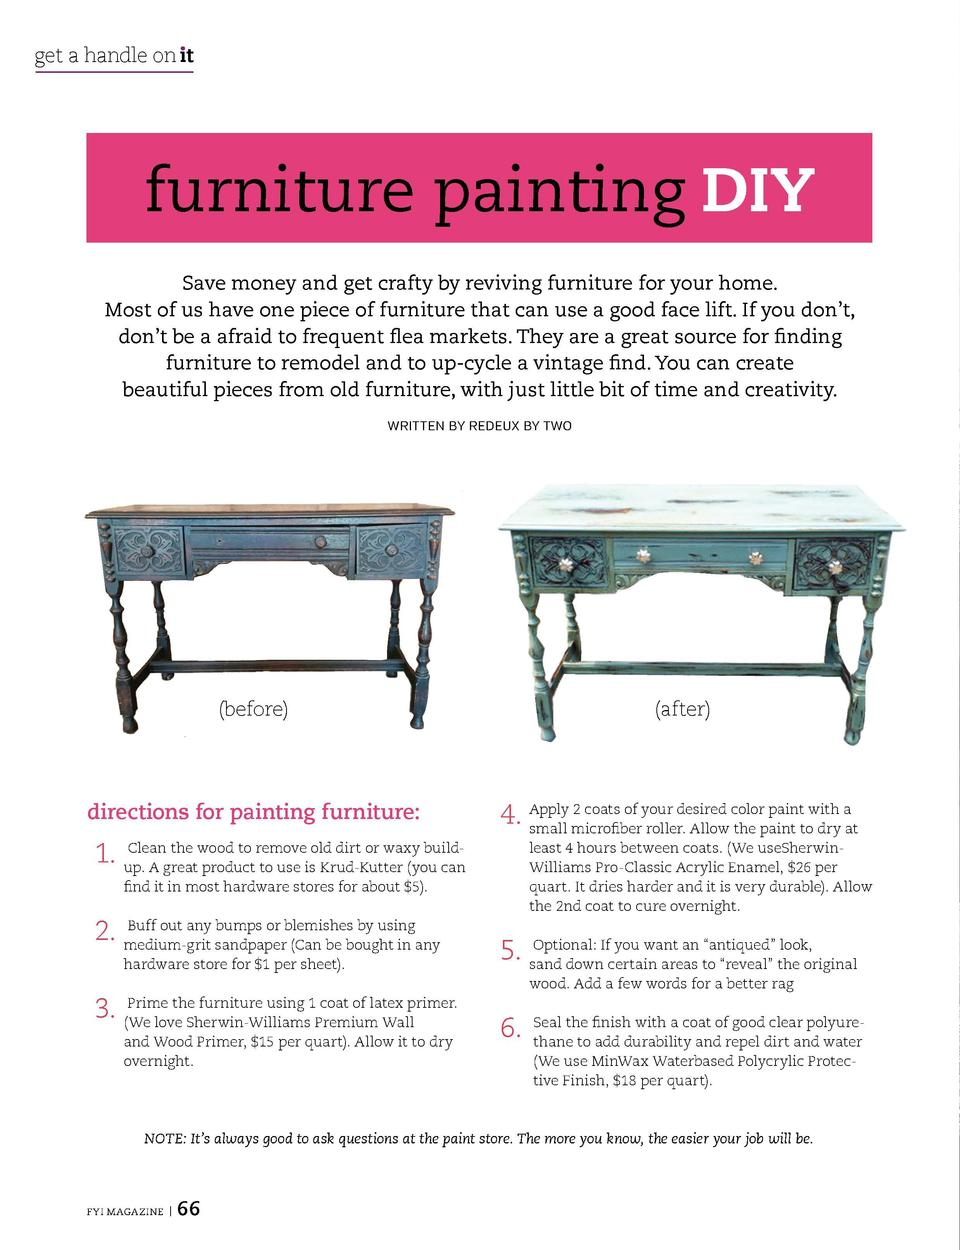 Get a handle on t get a handle on t furniture painting diy save money and